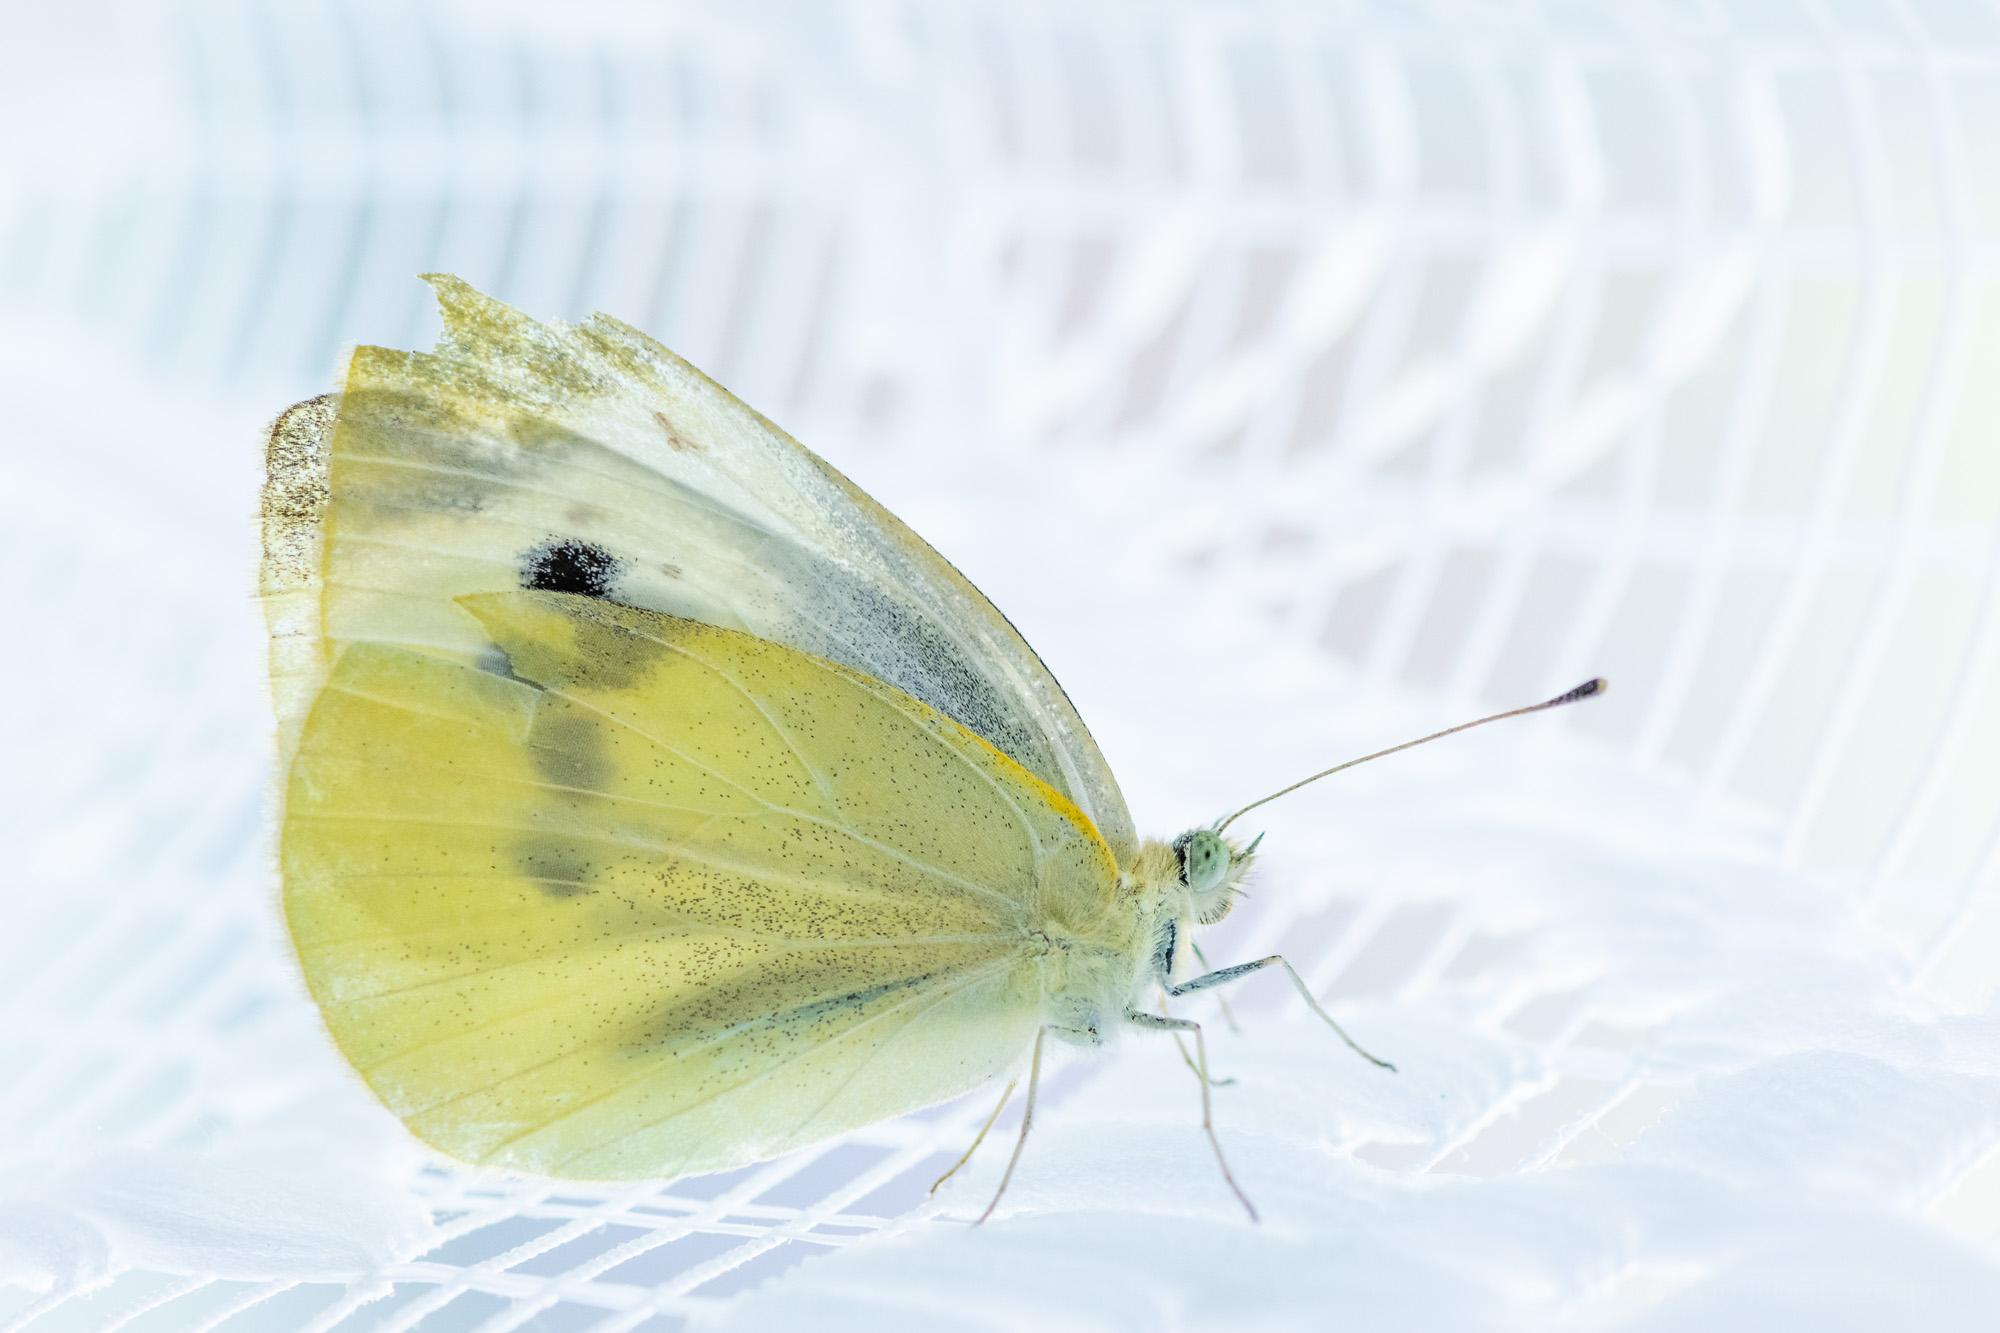 A female Cabbage White butterfly backlit on white lace curtains.